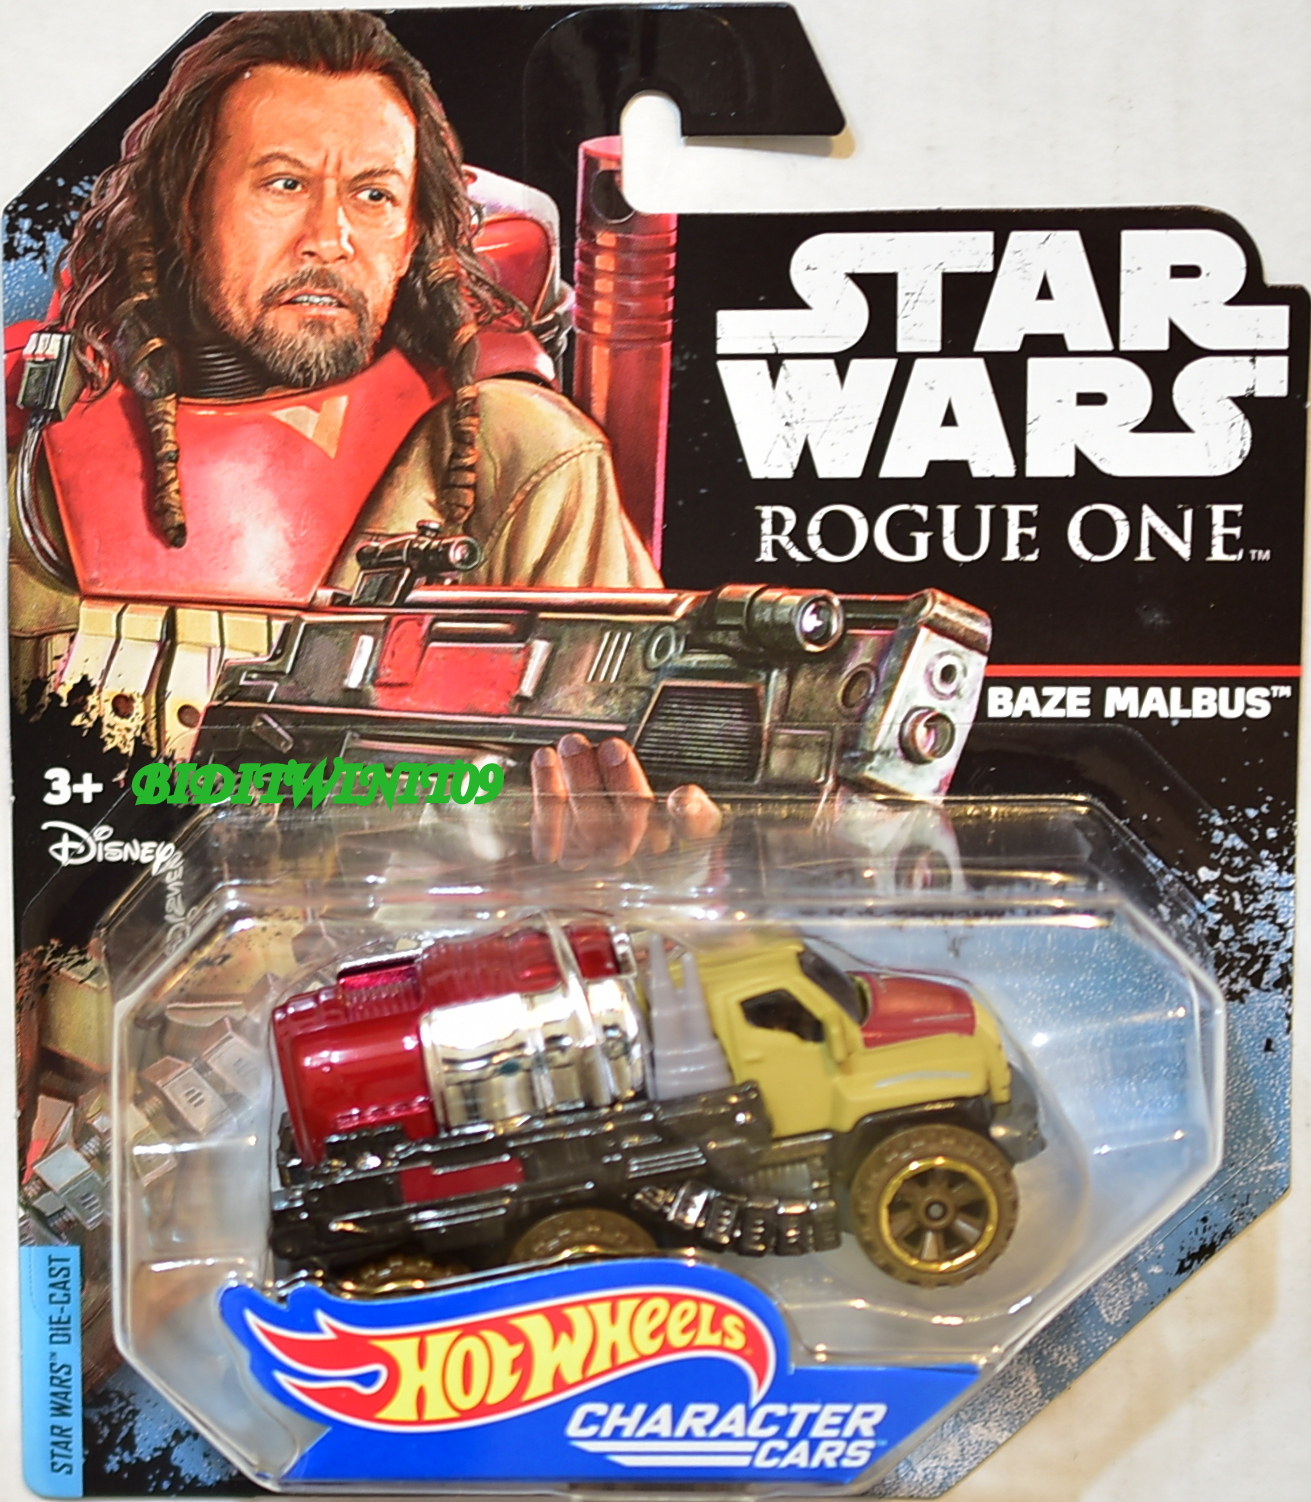 STAR WARS 2017 HOT WHEELS - ROGUE ONE BAZE MALBUS CHARACTER CARS